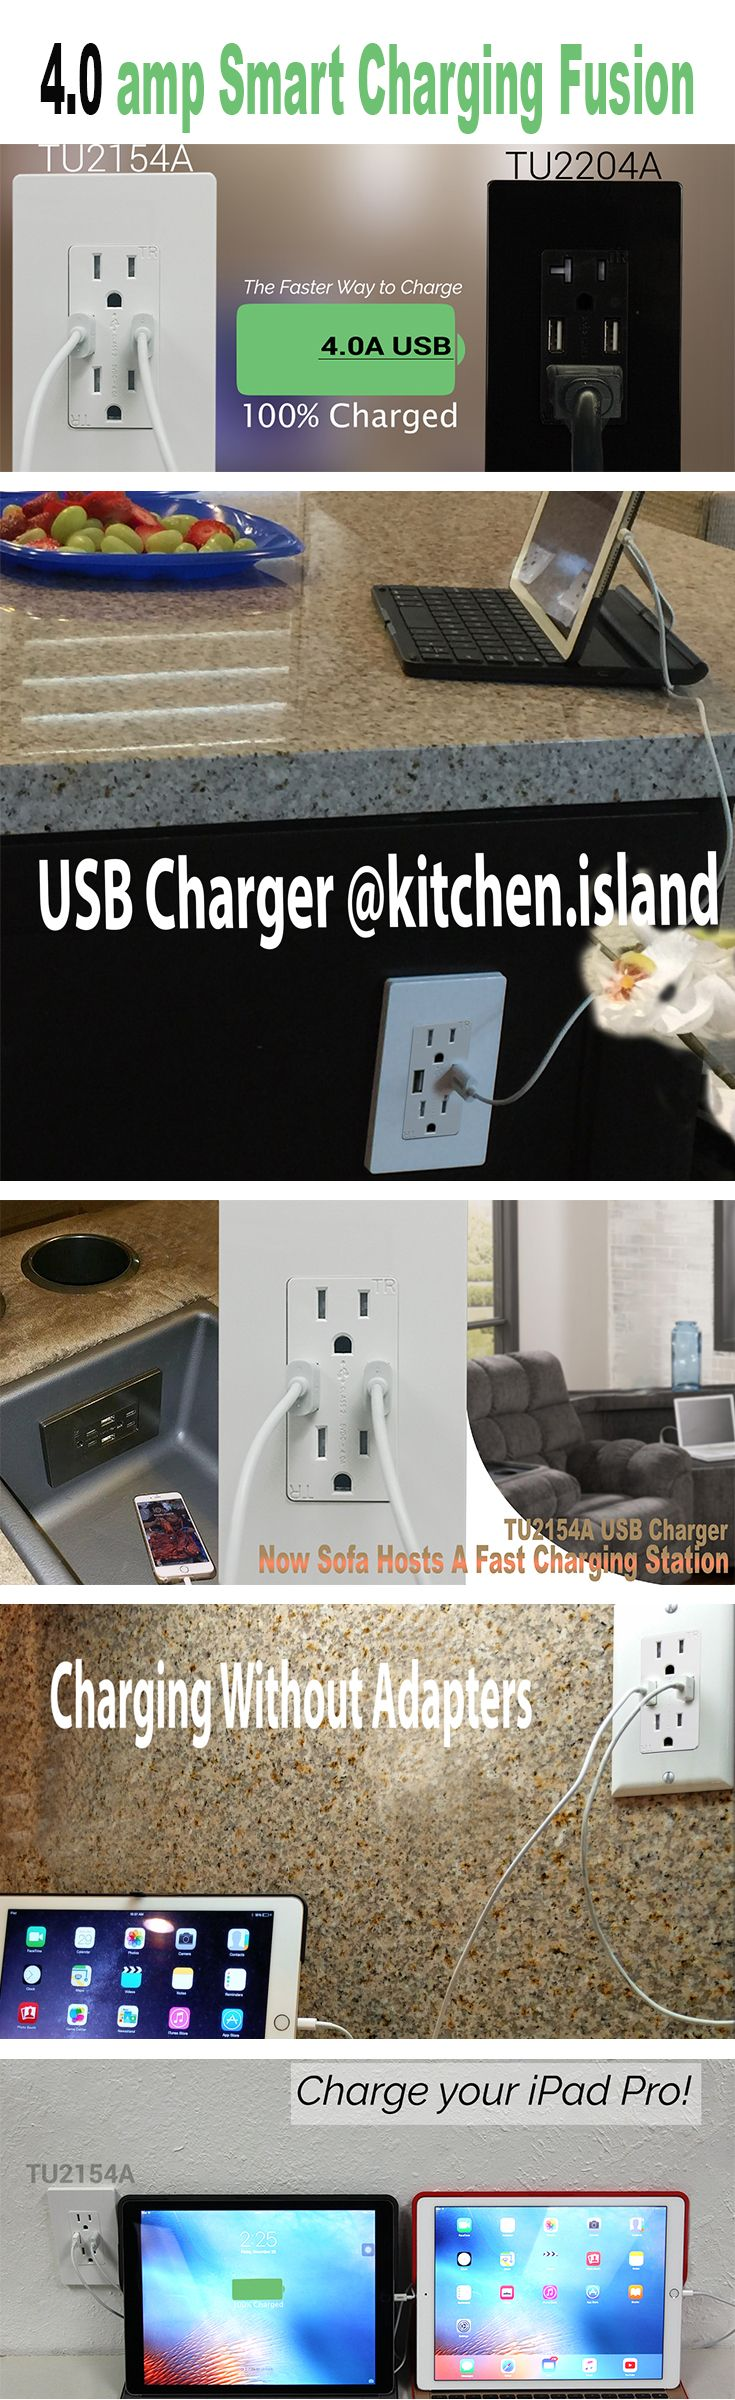 Charging has never been so convenience, fast and time saving! A smart chip enables TU2154A USB Charger Outlet to supply the power according to the device's need. Charging two devices same time. Ideal for living room, bedroom, kitchen counter top, kitchen island, home office, offices, walls at the corner, even sofa...